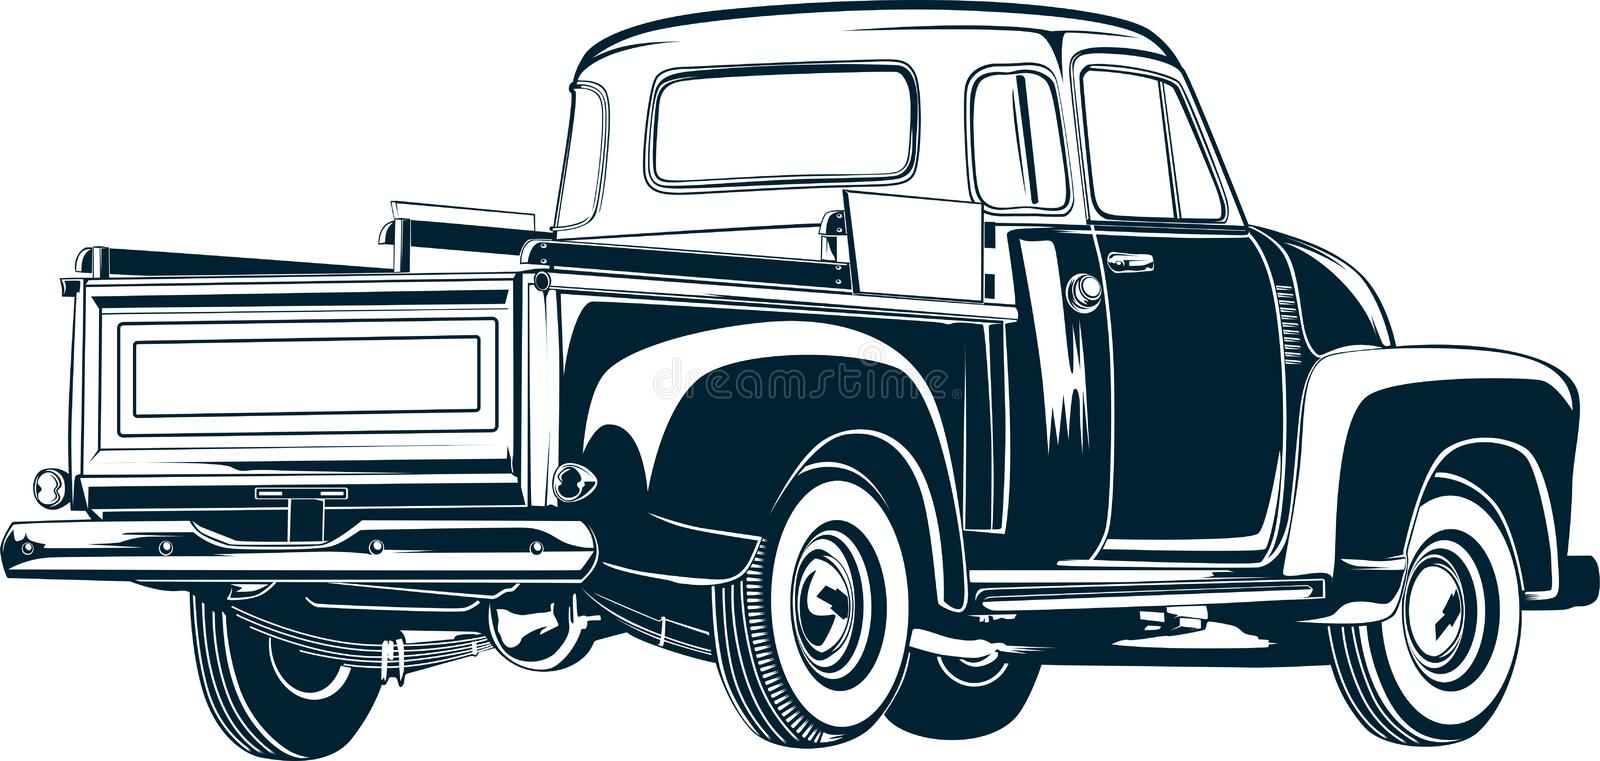 Retro clipart dell'illustrazione di vettore dell'automobile royalty illustrazione gratis